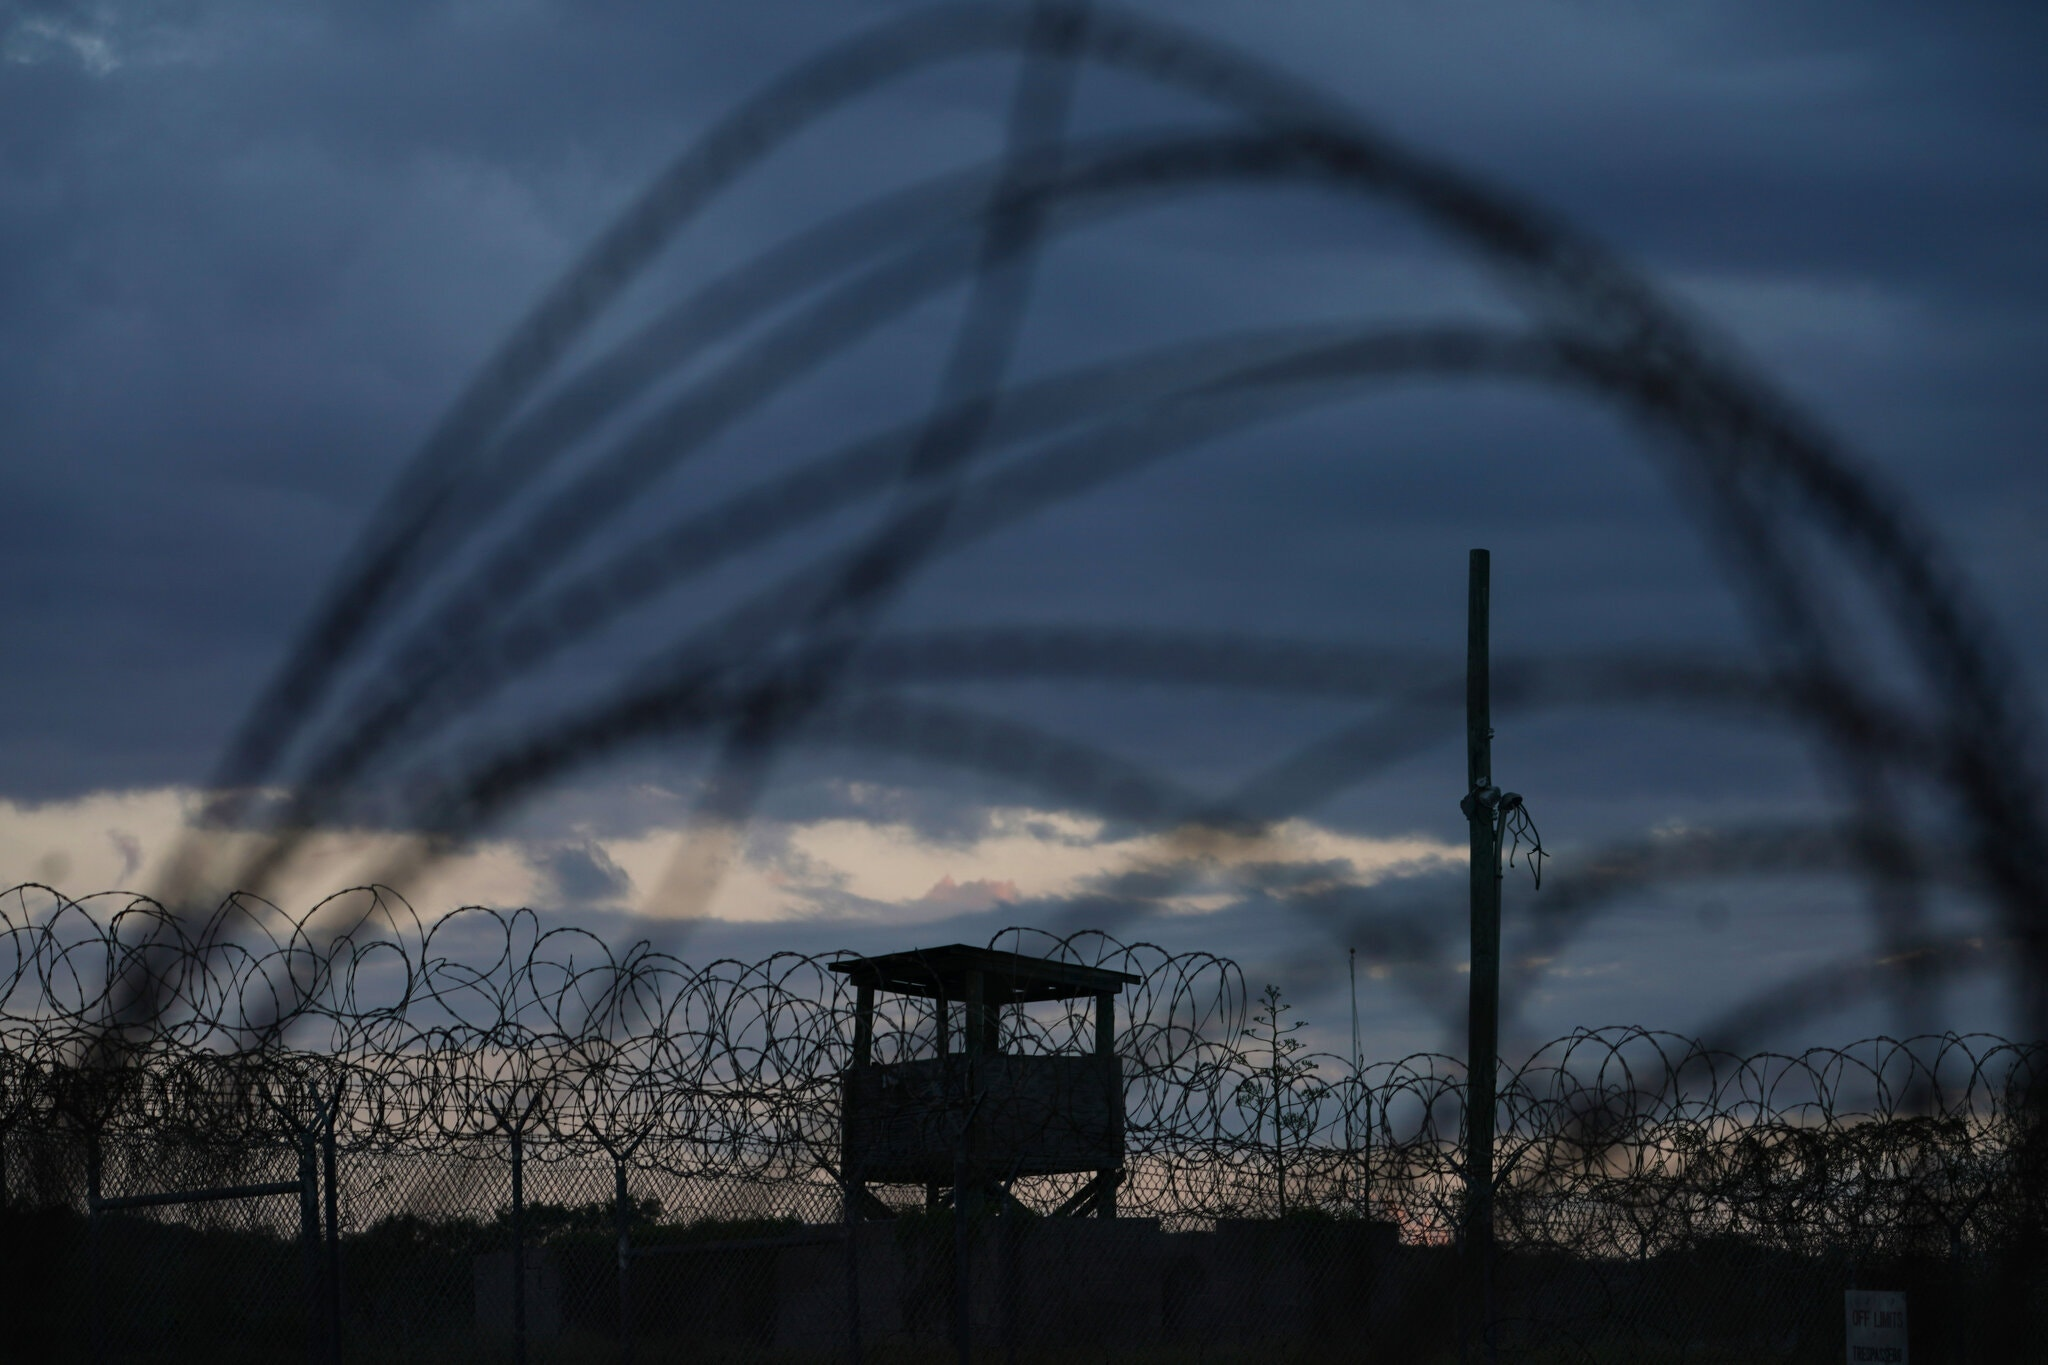 Biden Administration Transfers Its First Detainee from Guantánamo Bay